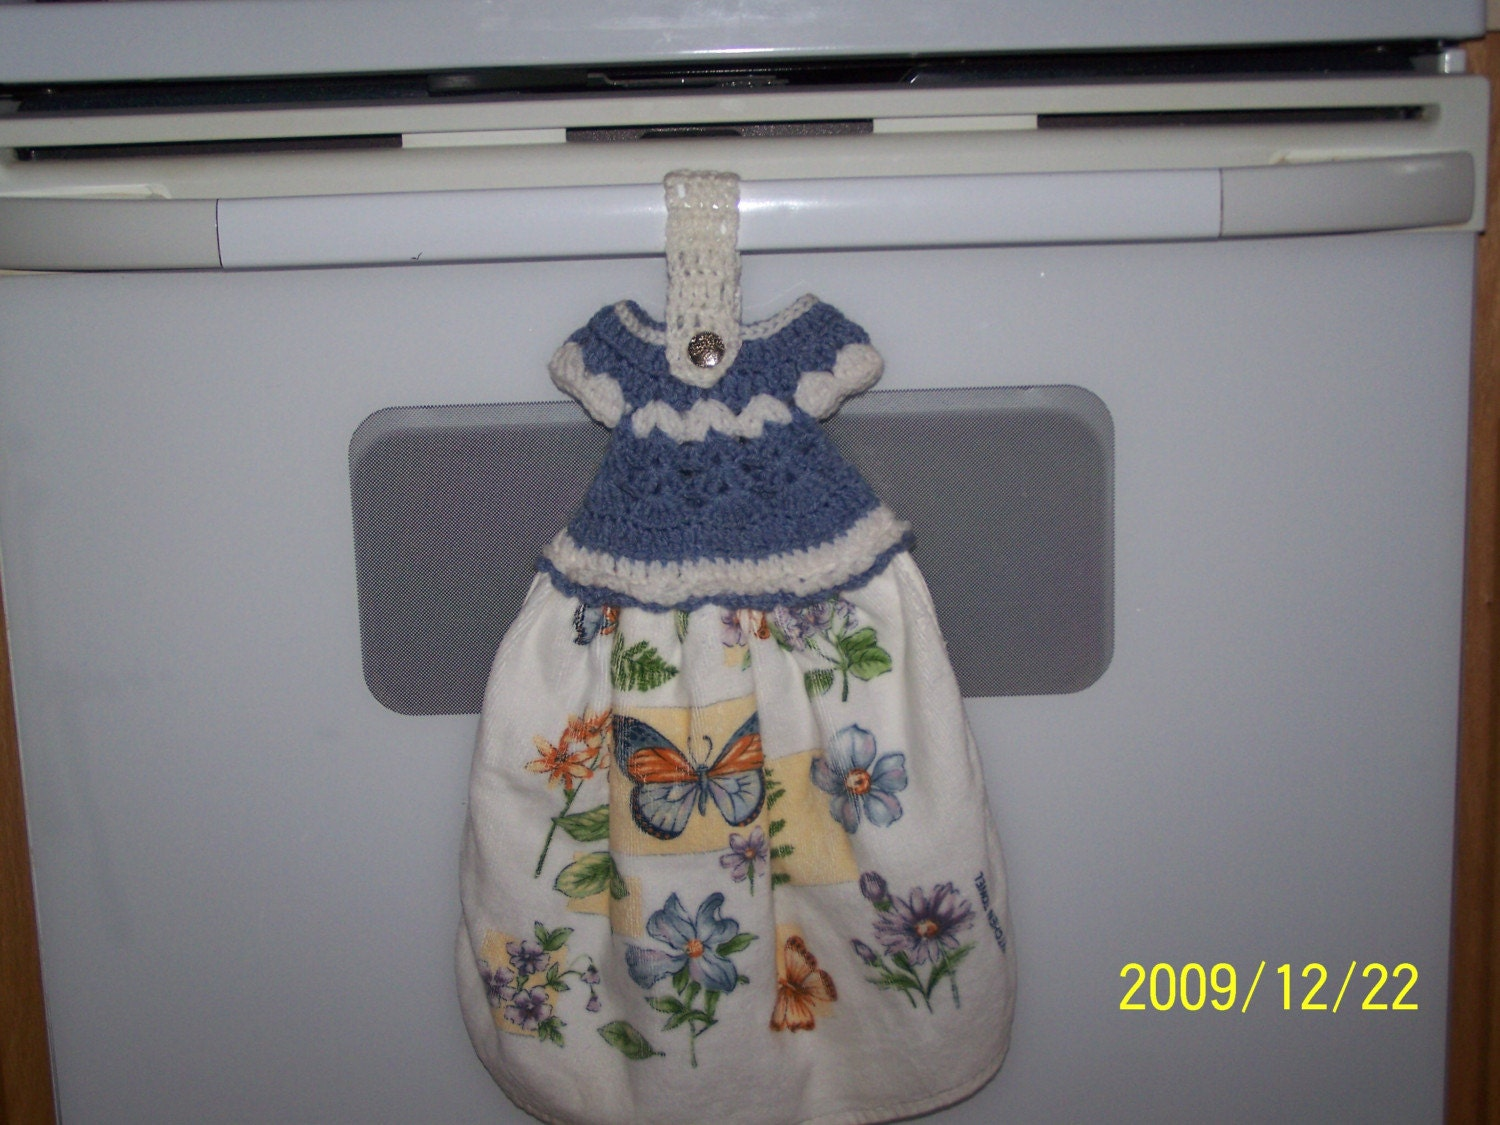 Crocheted towel topper doll dress by creationsrus2008 on etsy